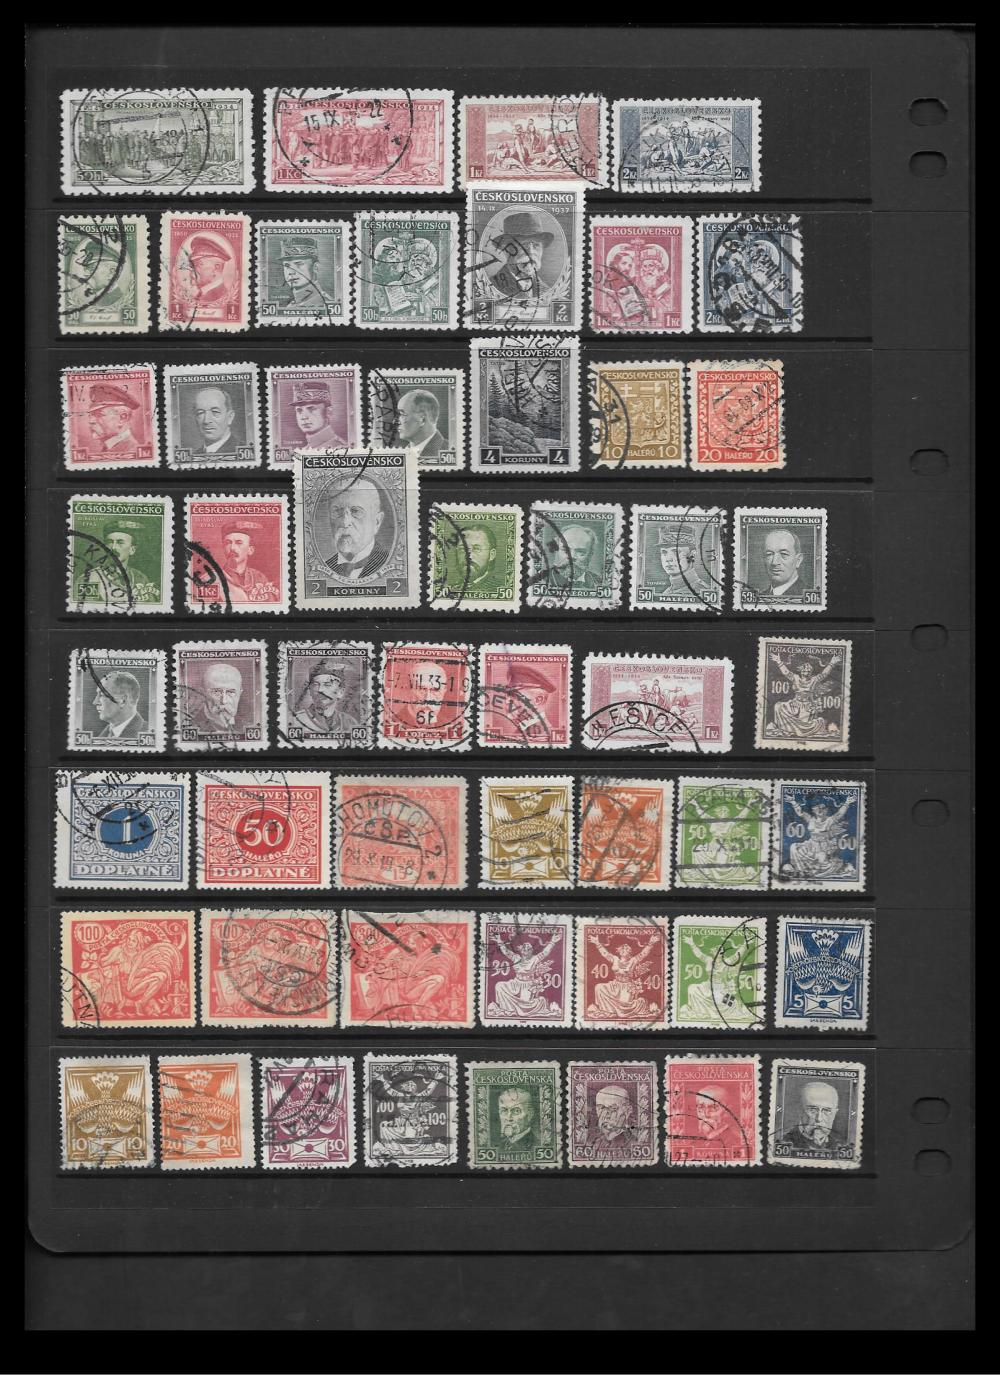 Czechoslovakia Stamp Collection 2